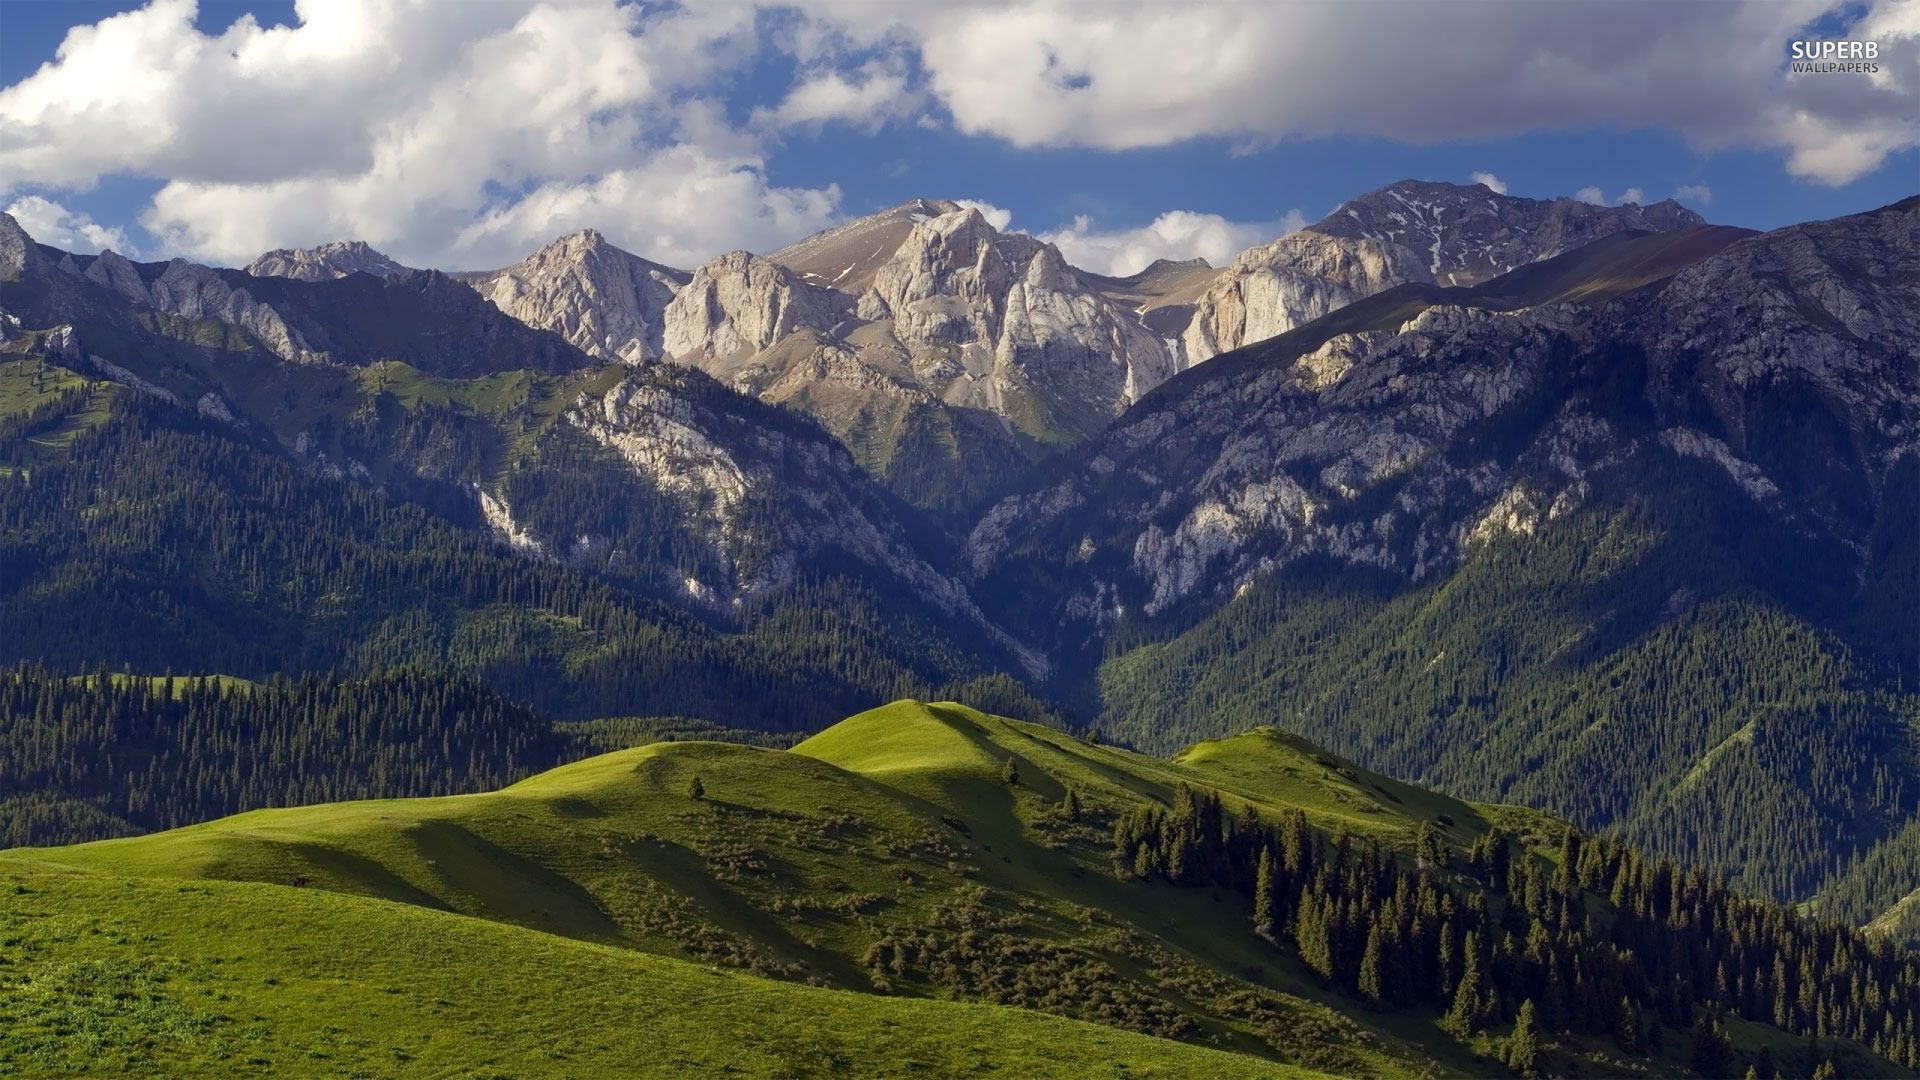 Mountains Nature Background For Computer With Images Mountain